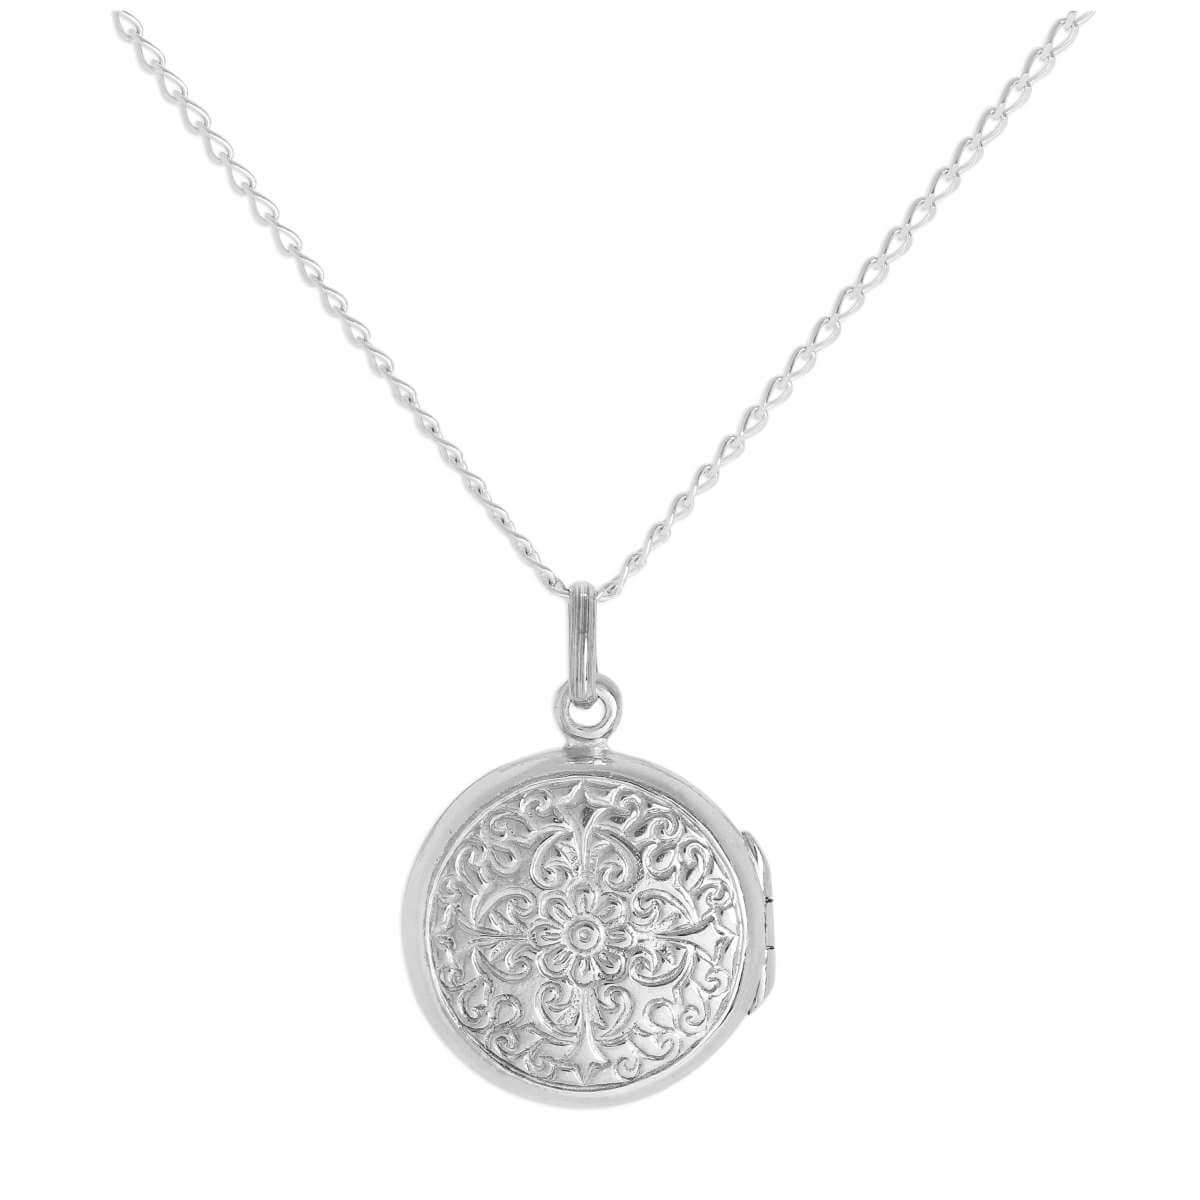 Small Round Sterling Silver Flower Locket on Chain 16 - 24 Inches